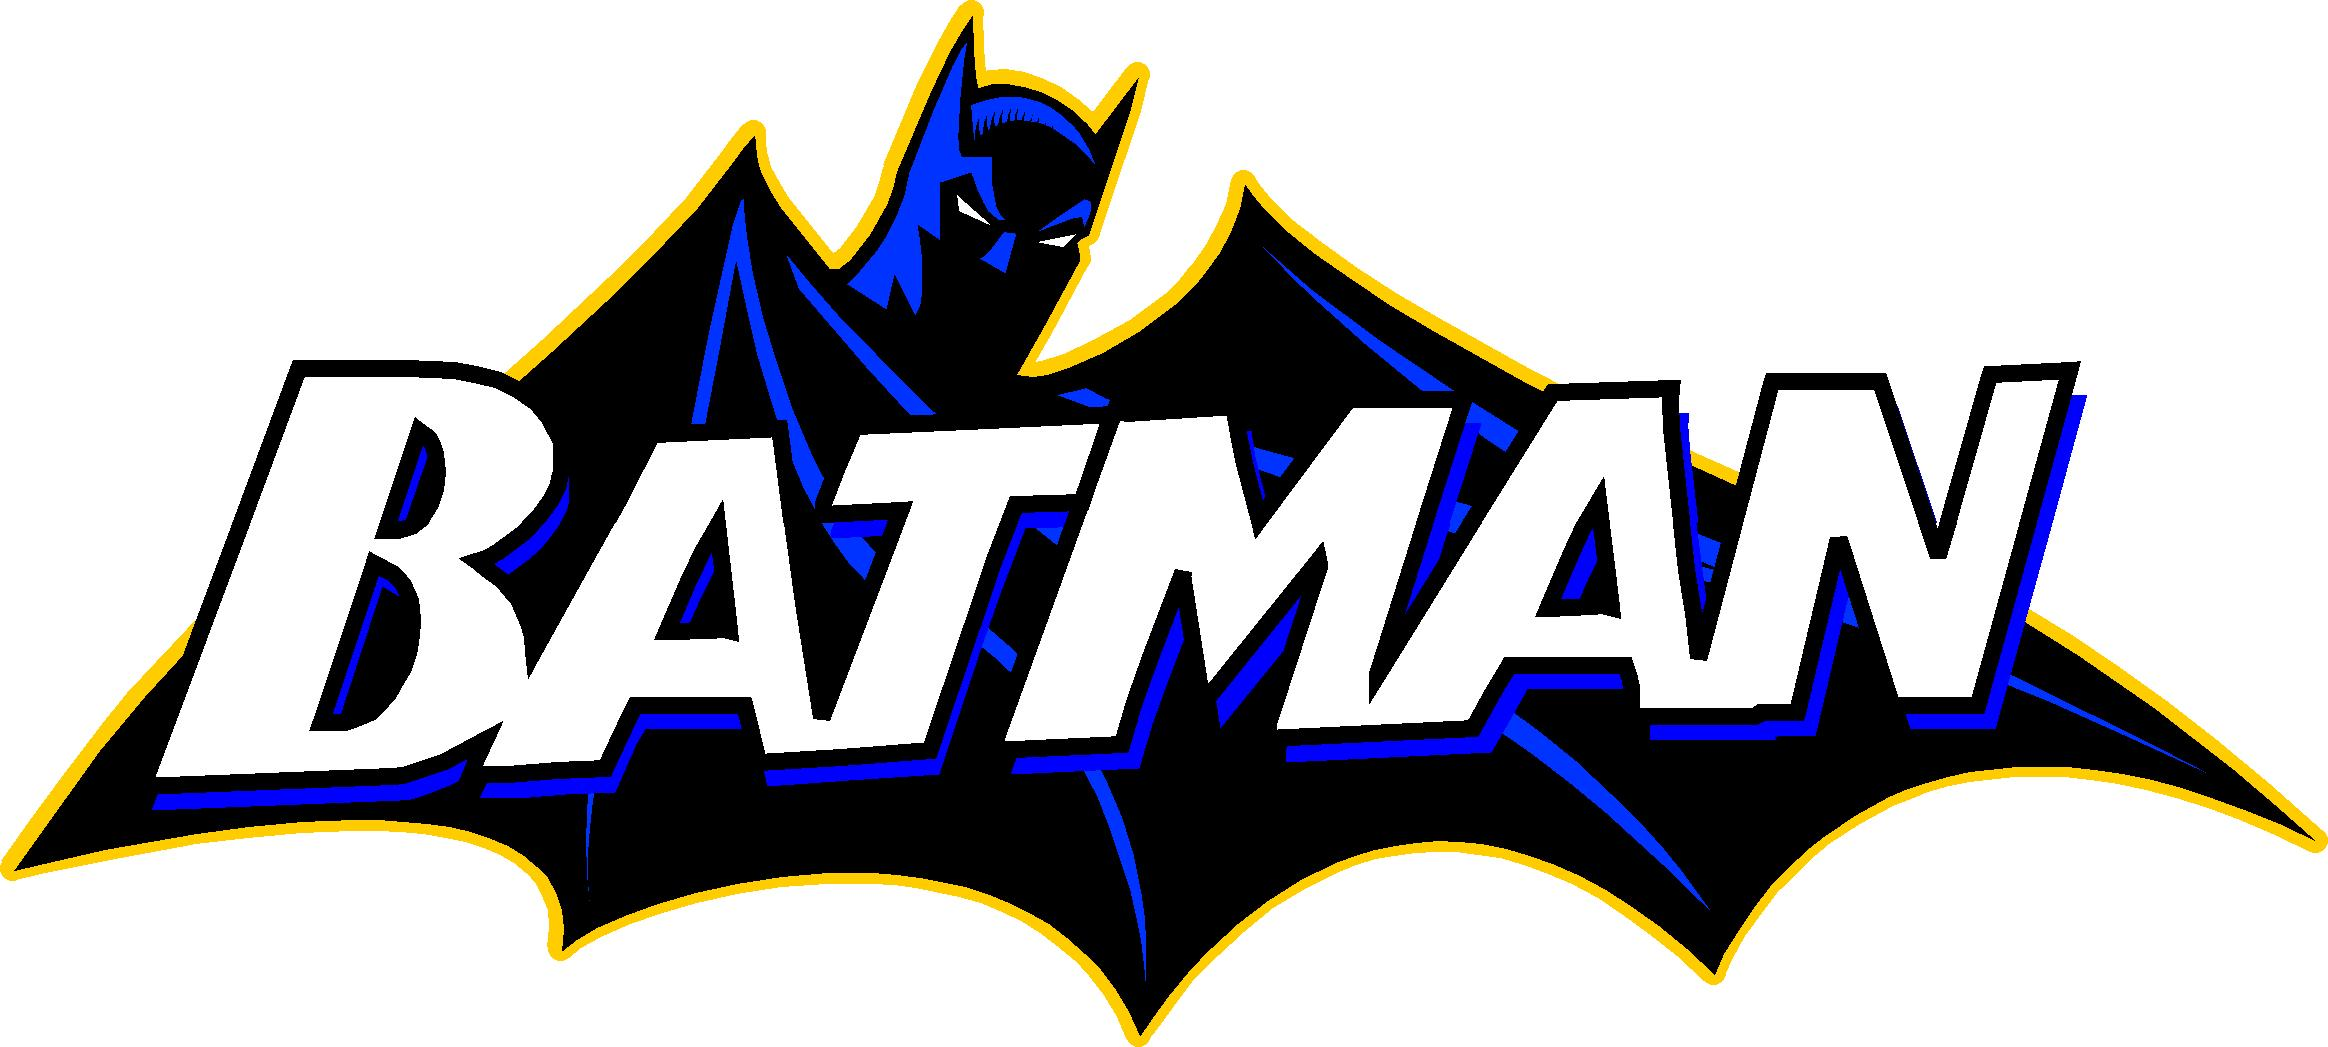 Batman Logo Clipart At GetDrawings